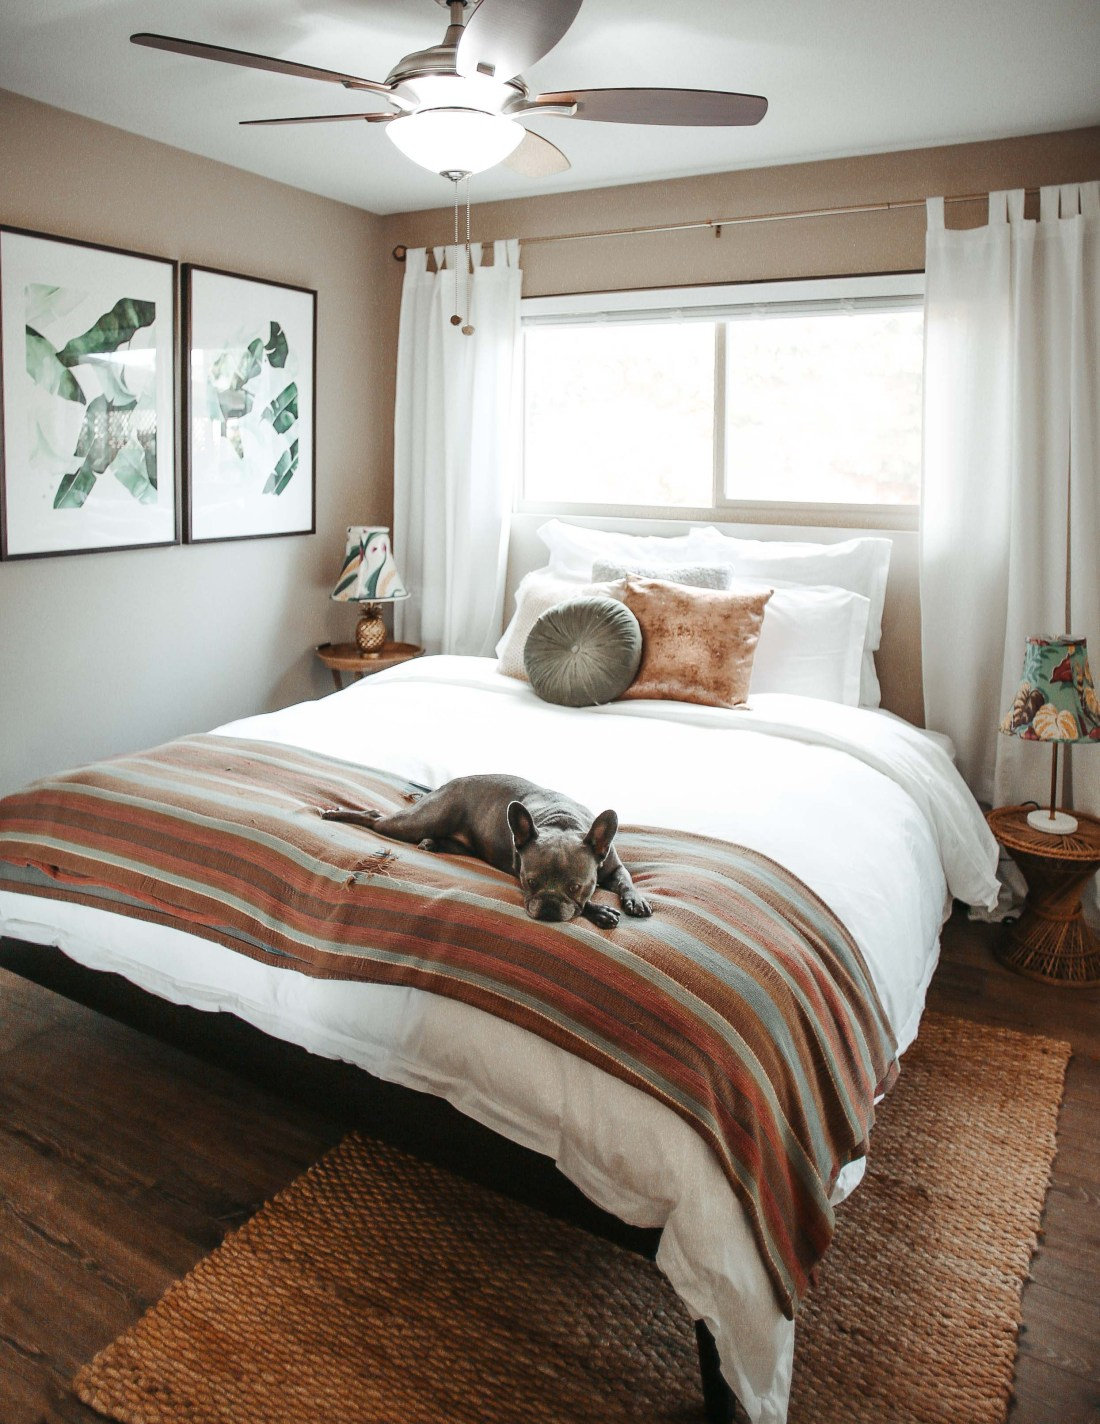 Guest Room Vintage Beach Vibe | Boll and Branch